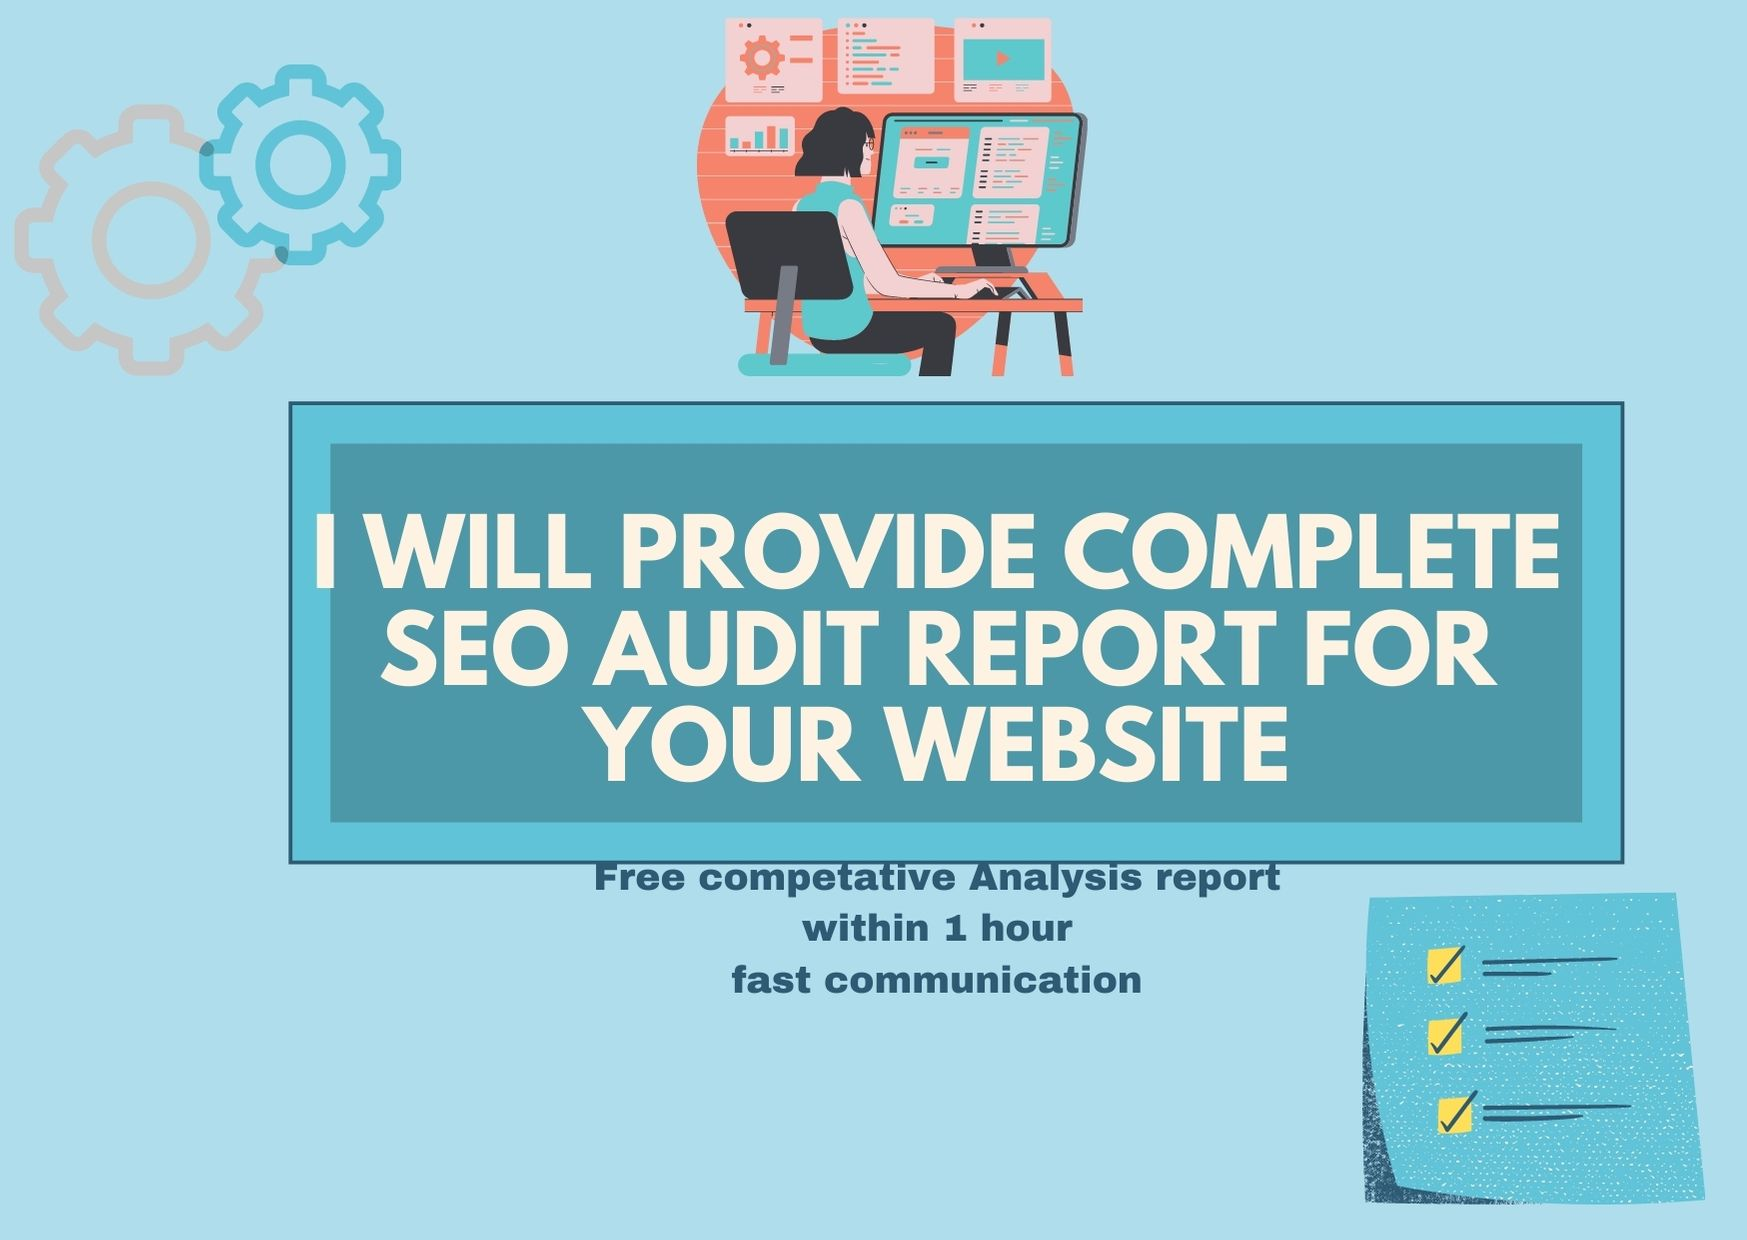 I will provide complete SEO Audit report of your website within one hour